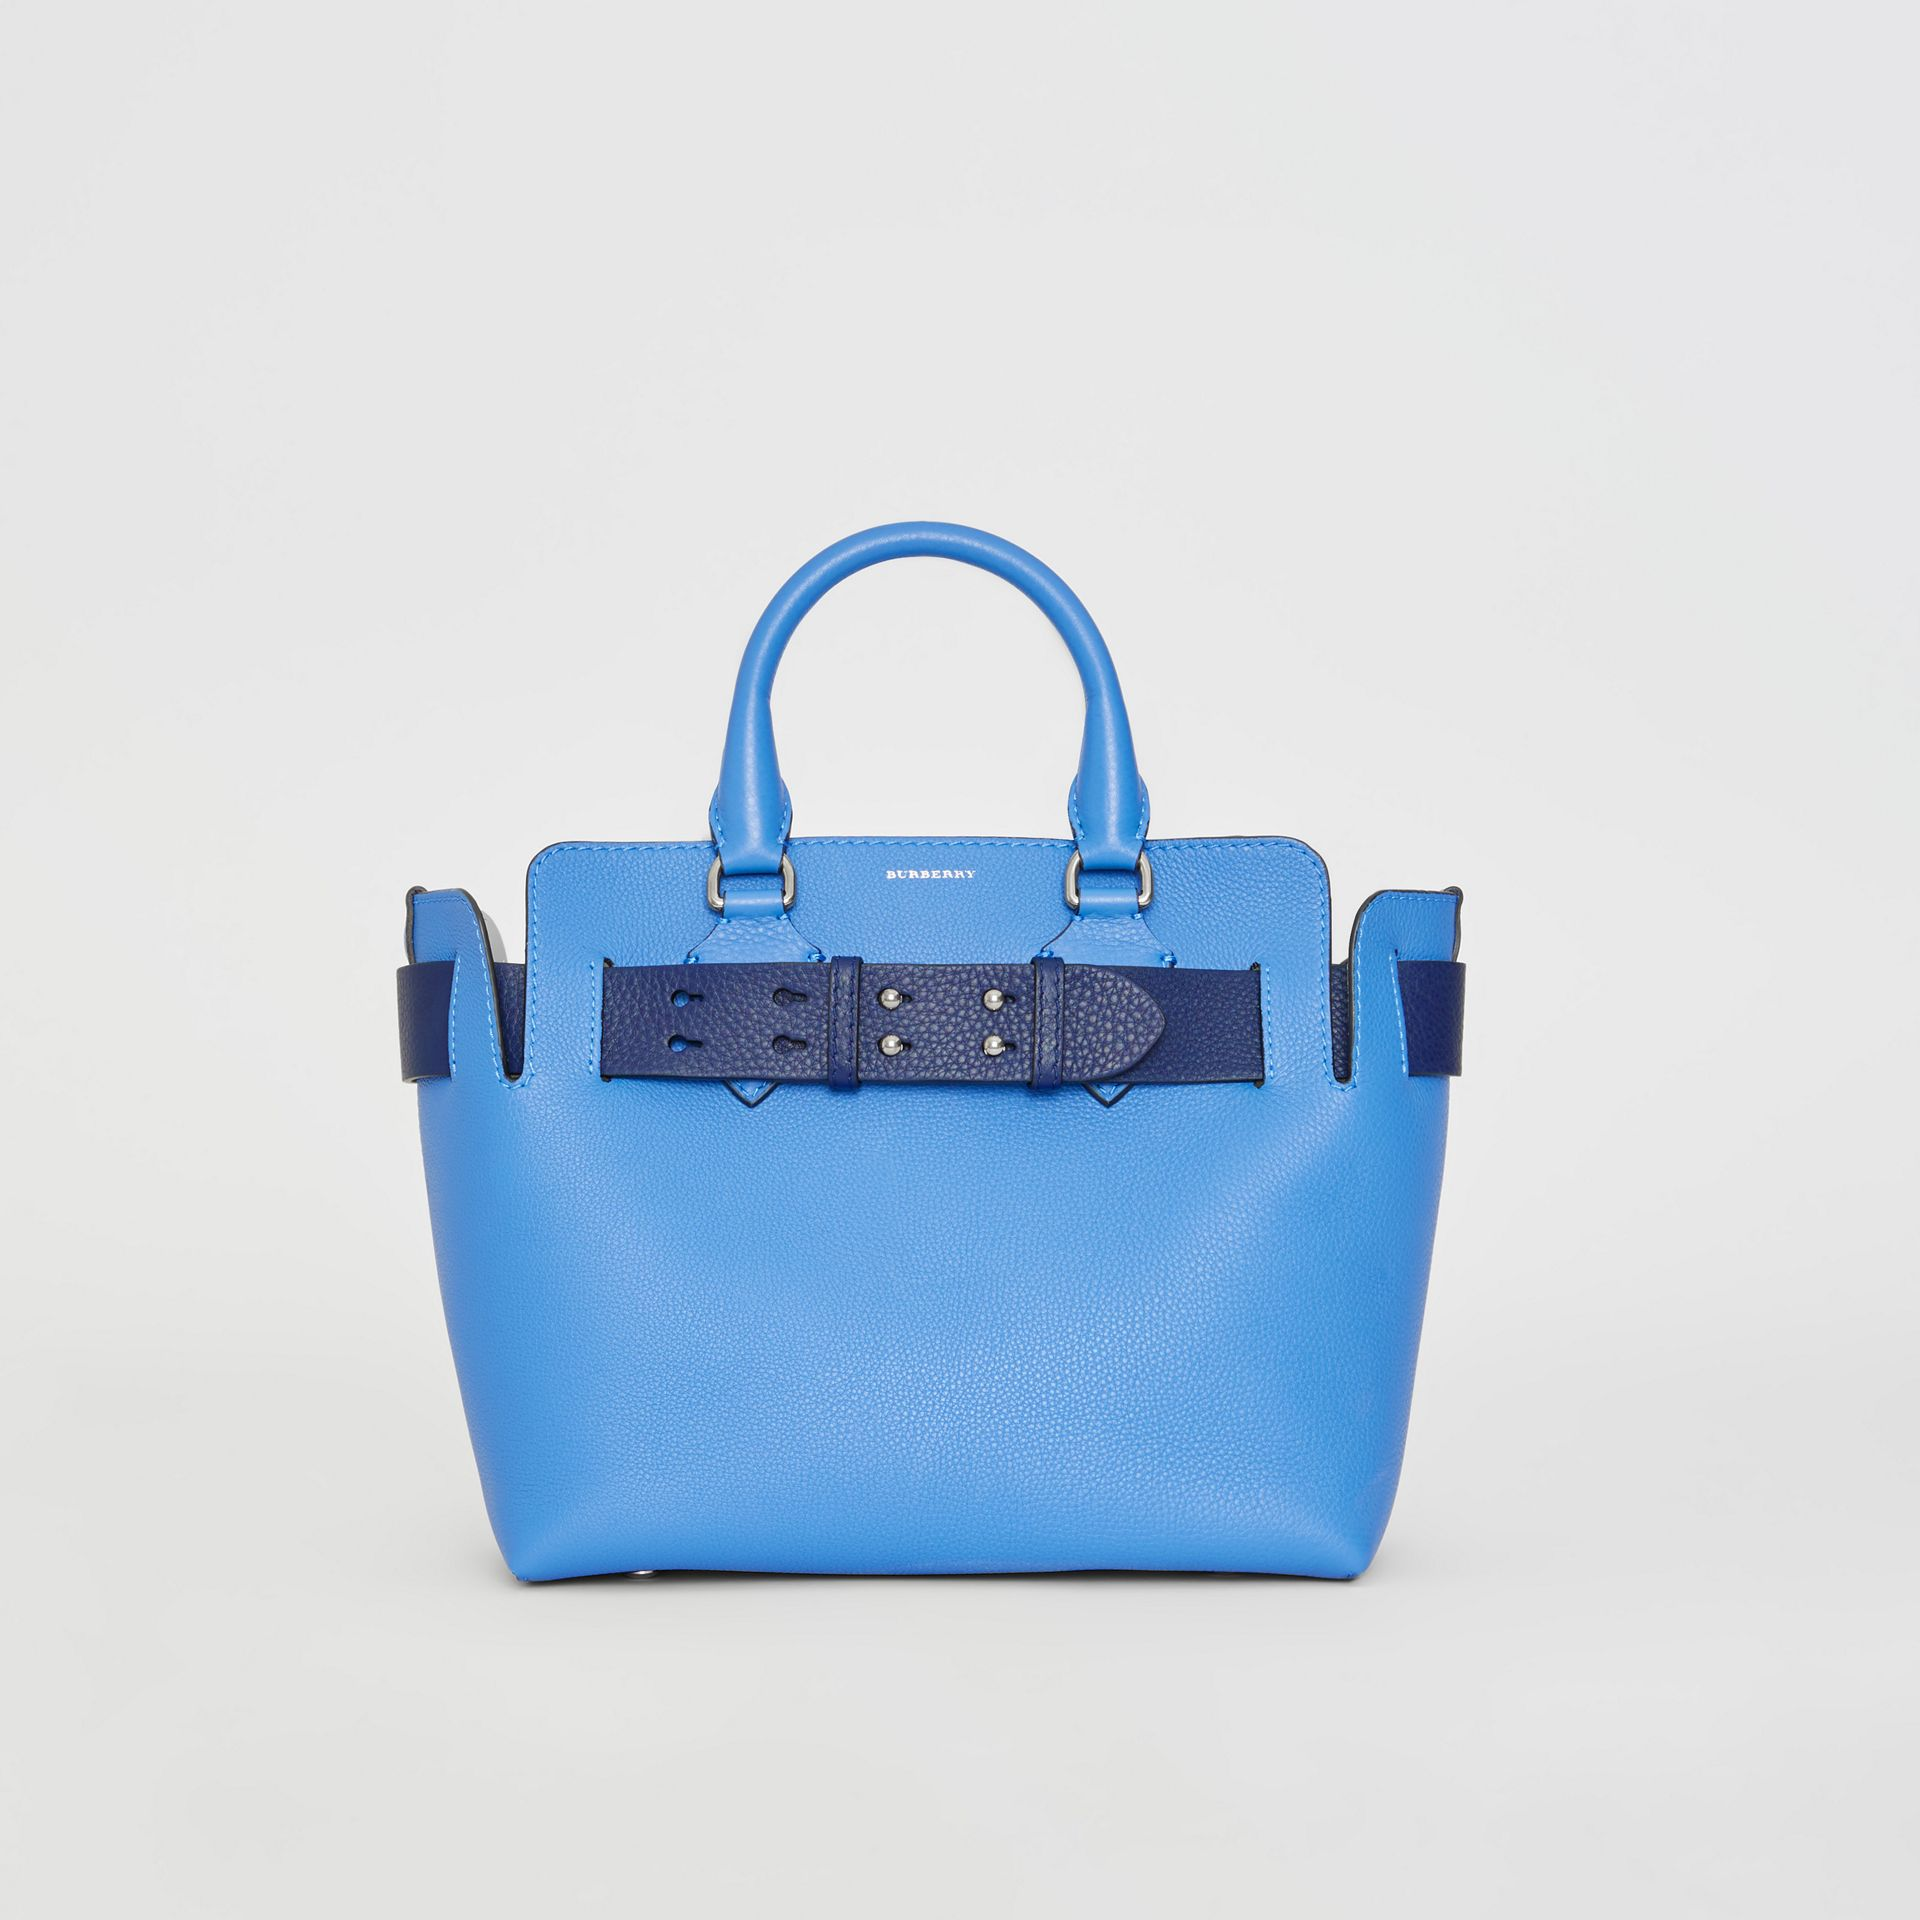 Borsa The Belt piccola in pelle (Blu Ortensia) - Donna | Burberry - immagine della galleria 0